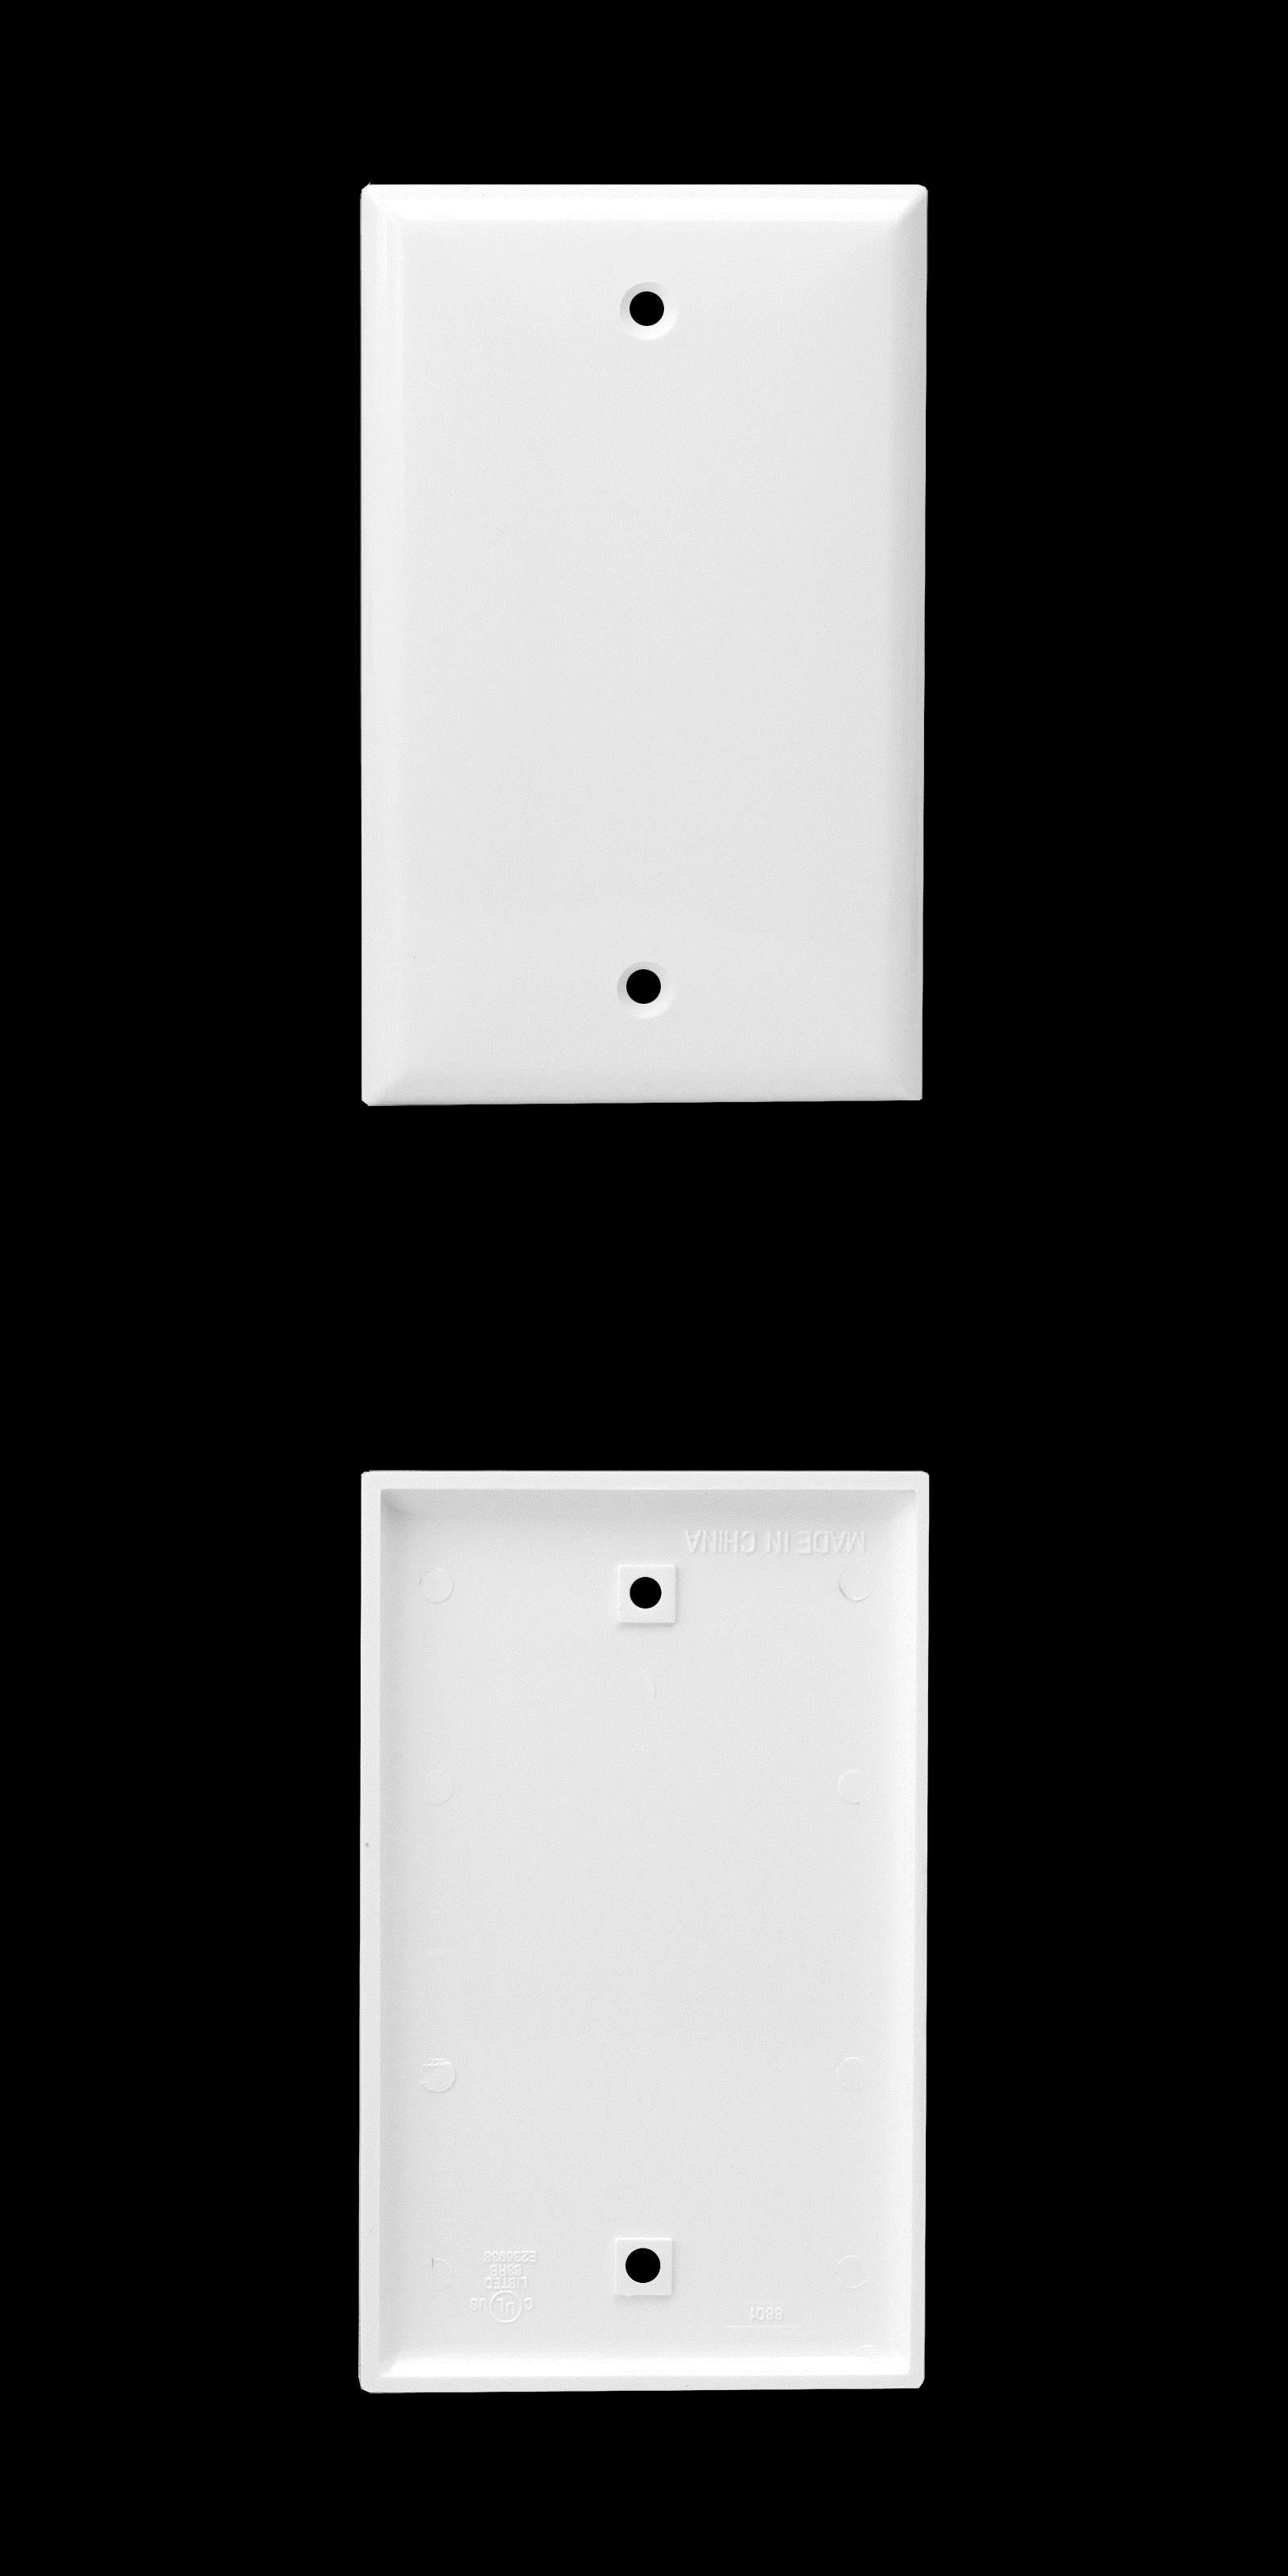 Where To Buy Switch Plate Covers Switch Plates And Outlet Covers 43412 100Pc Blank Single Outlet